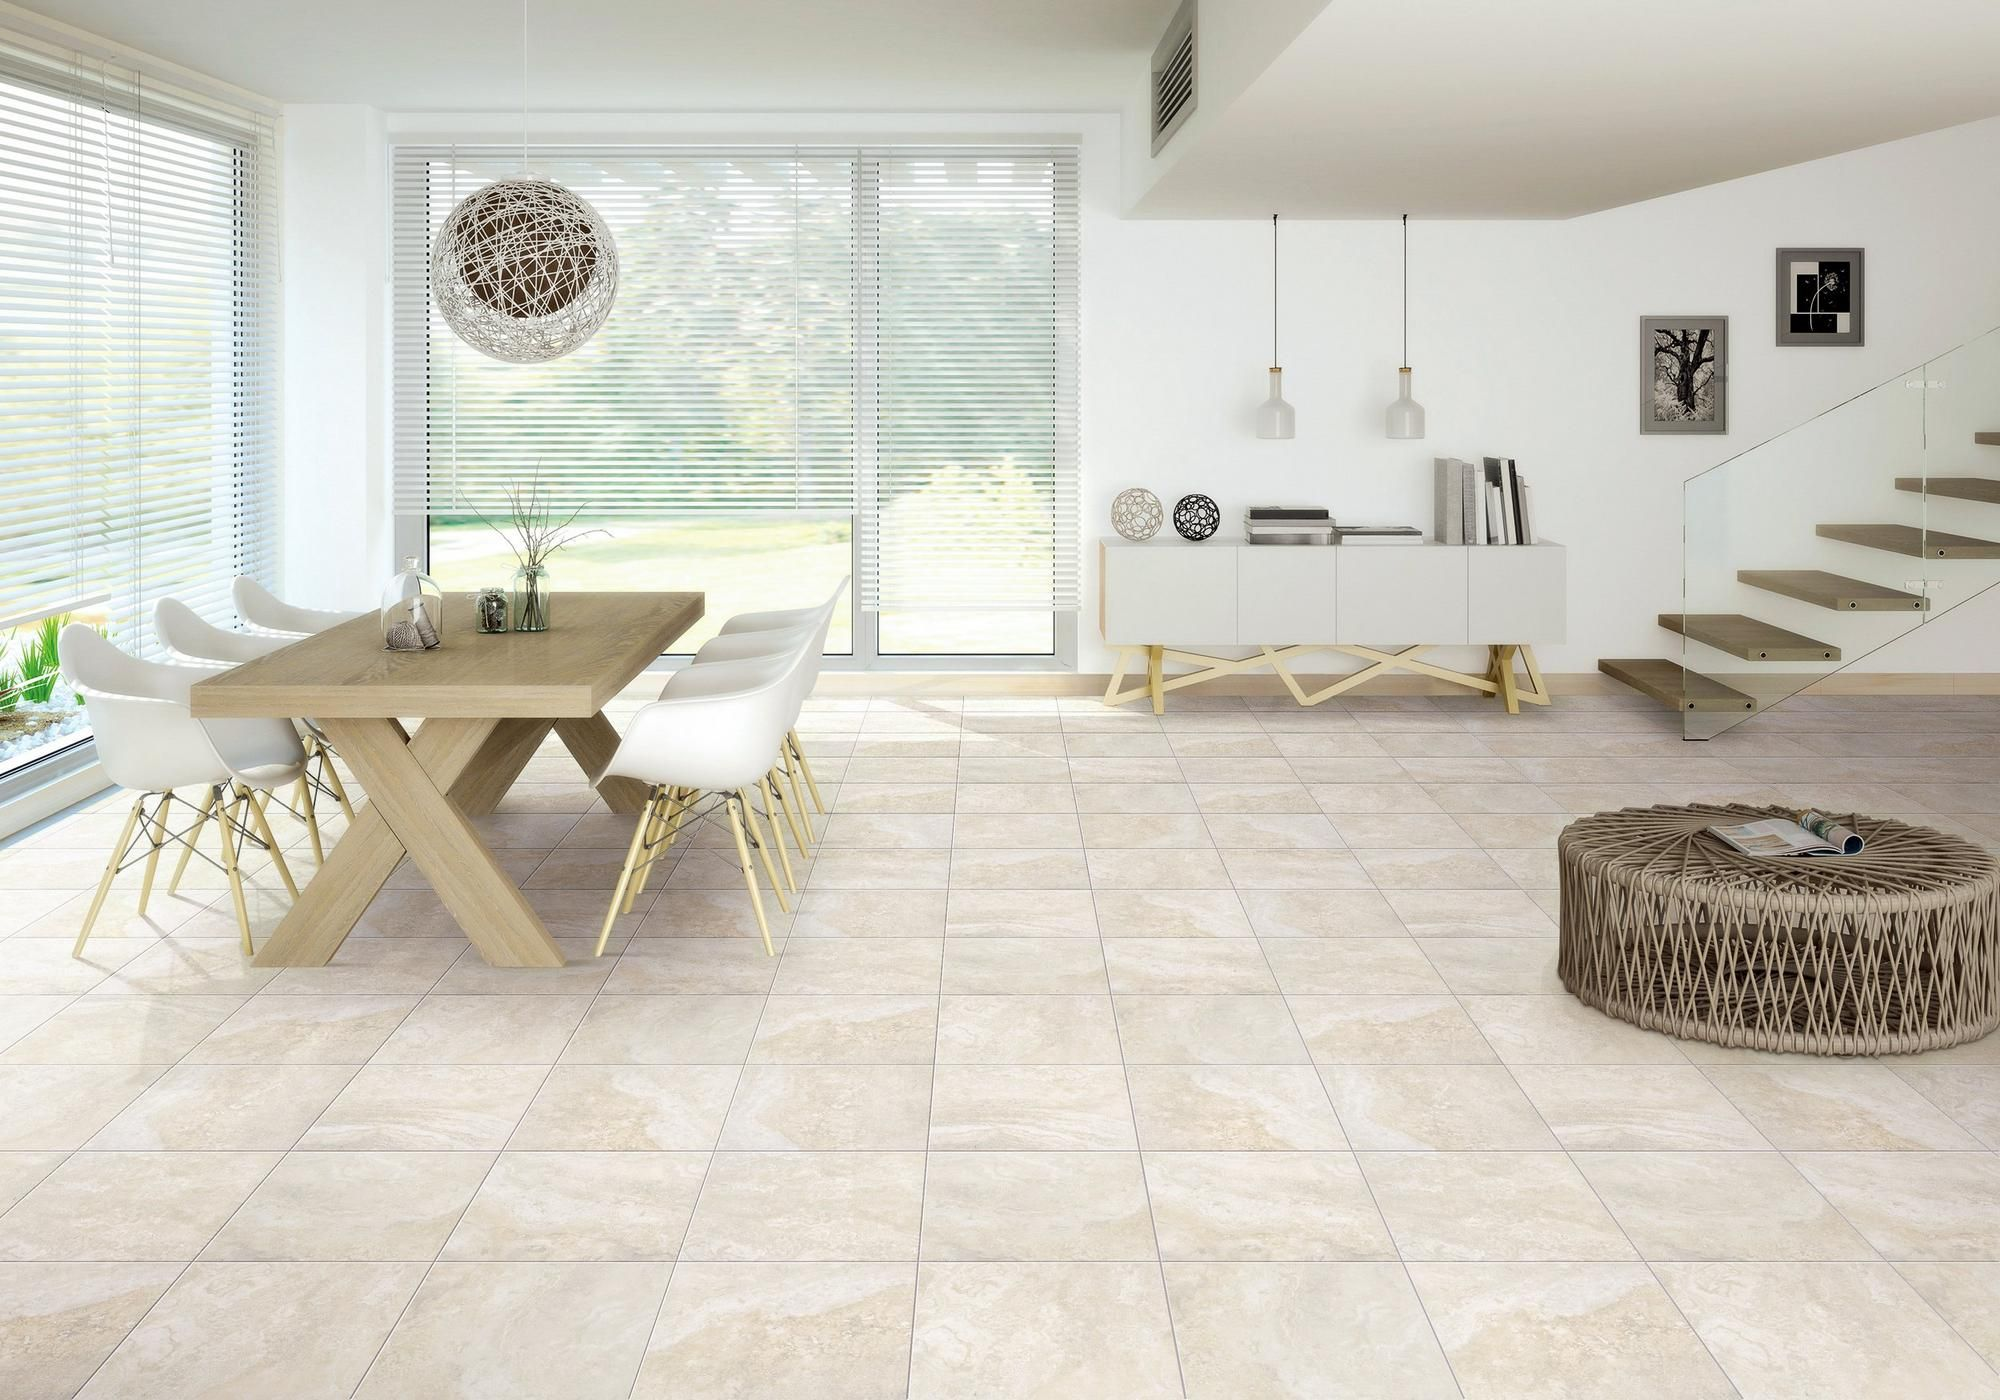 Seville Ivory Porcelain Tile Floor Decor In 2020 Ivory Porcelain Tiles Floor Decor Stone Tile Flooring